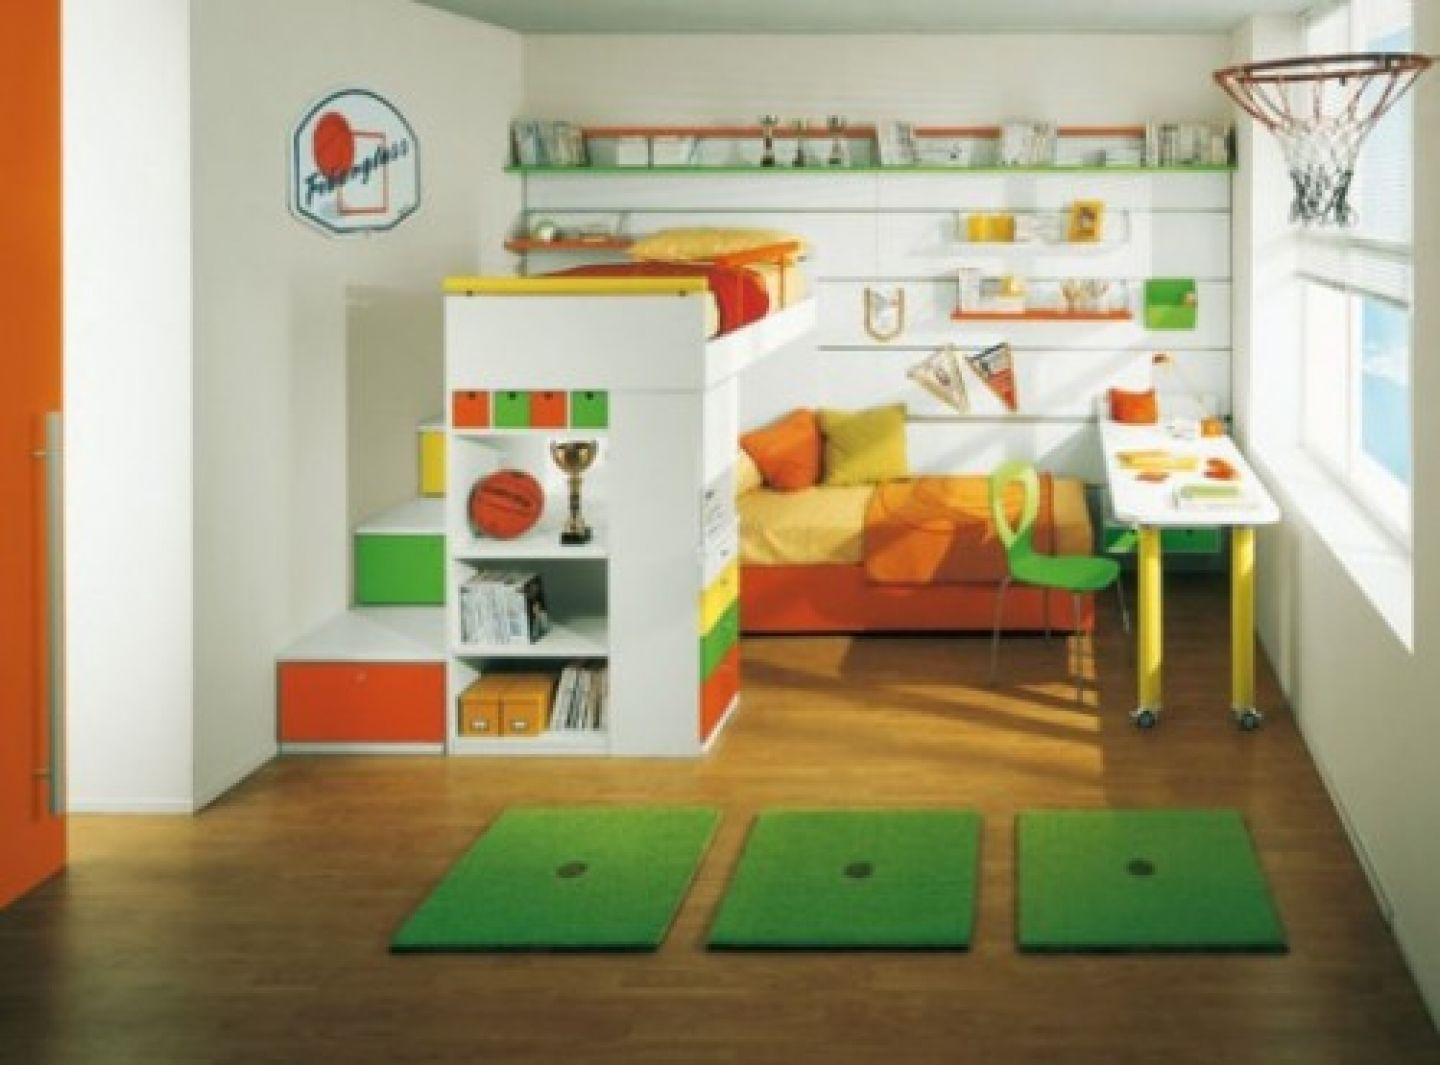 Amazing Ikea Ideas   Amazing Ikea Kids Bedroom By Fun Design Ideas Image id  14491. Amazing Ikea Ideas   Amazing Ikea Kids Bedroom By Fun Design Ideas